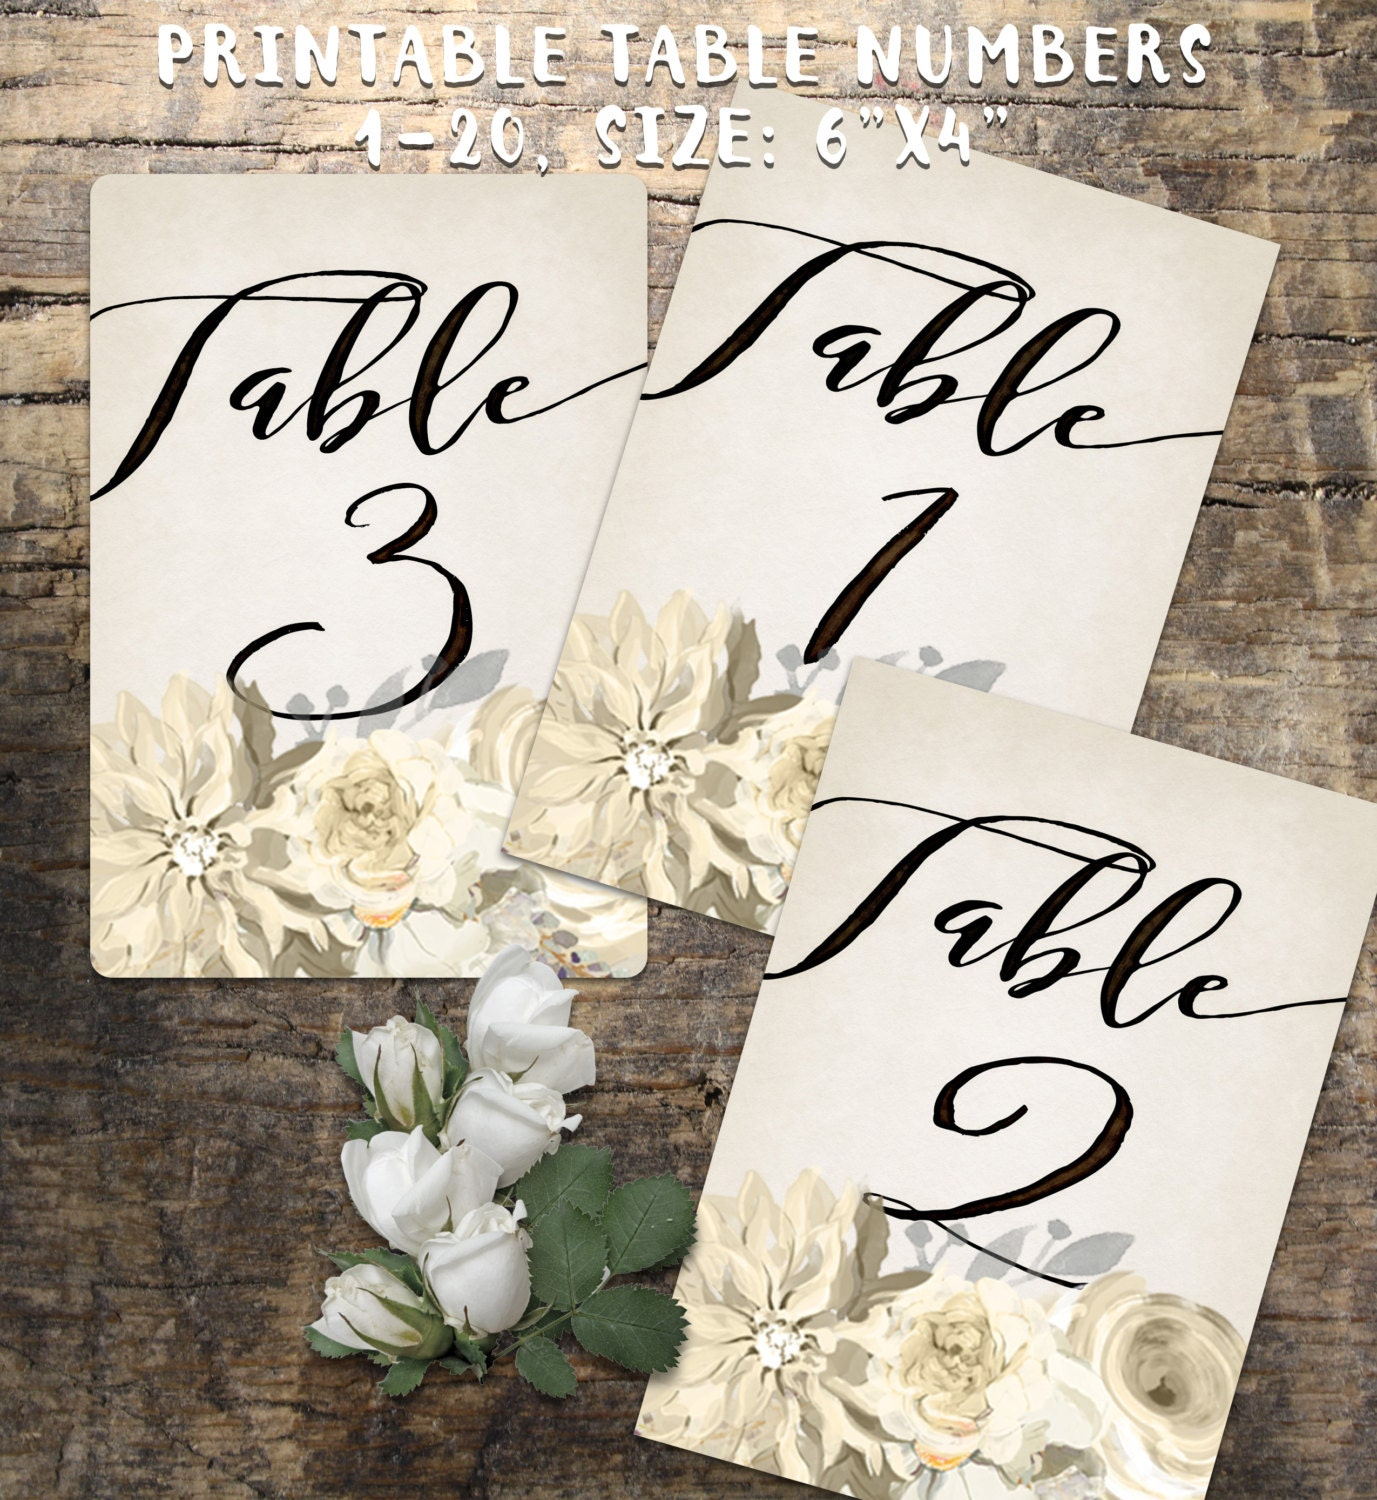 It's just a graphic of Candid Free Printable Table Numbers 1-20